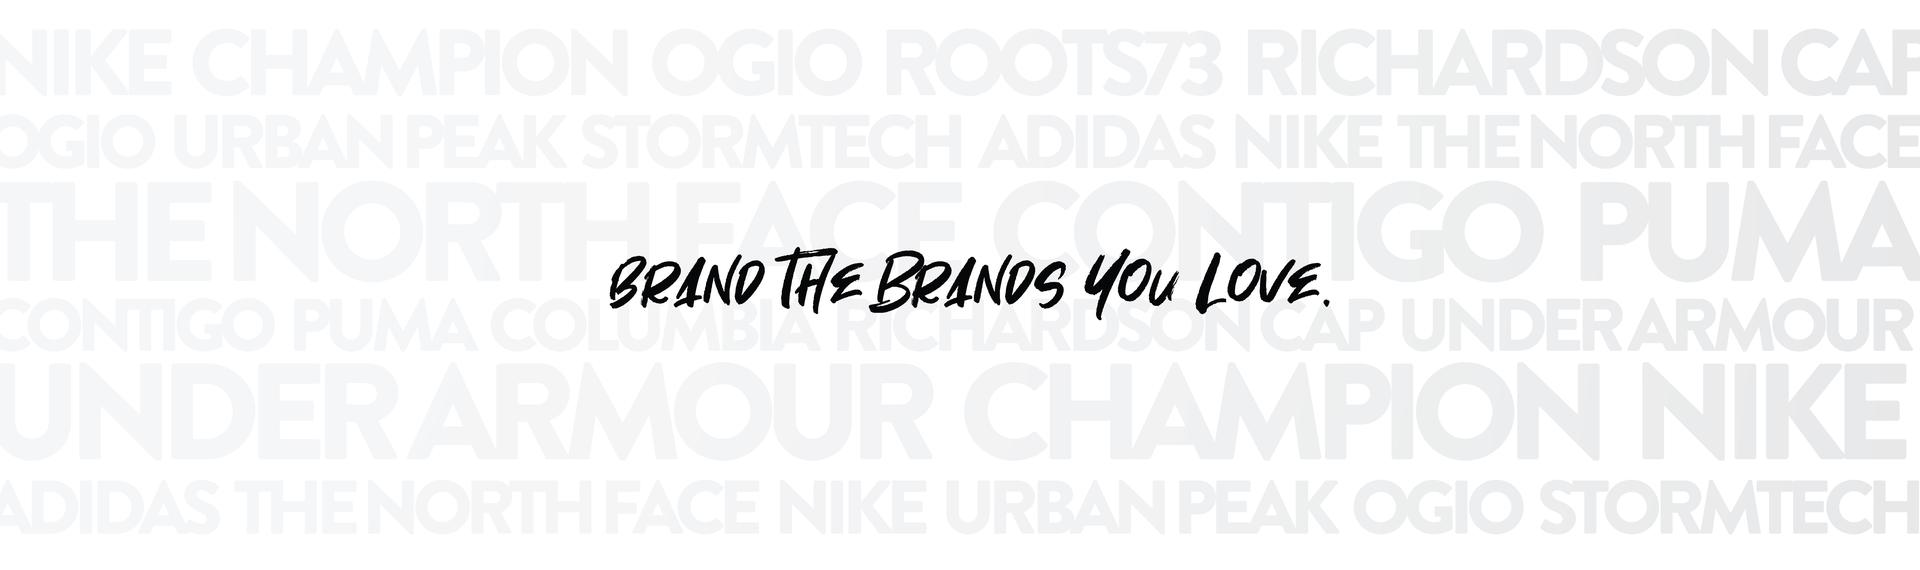 Brand the Brands You Love